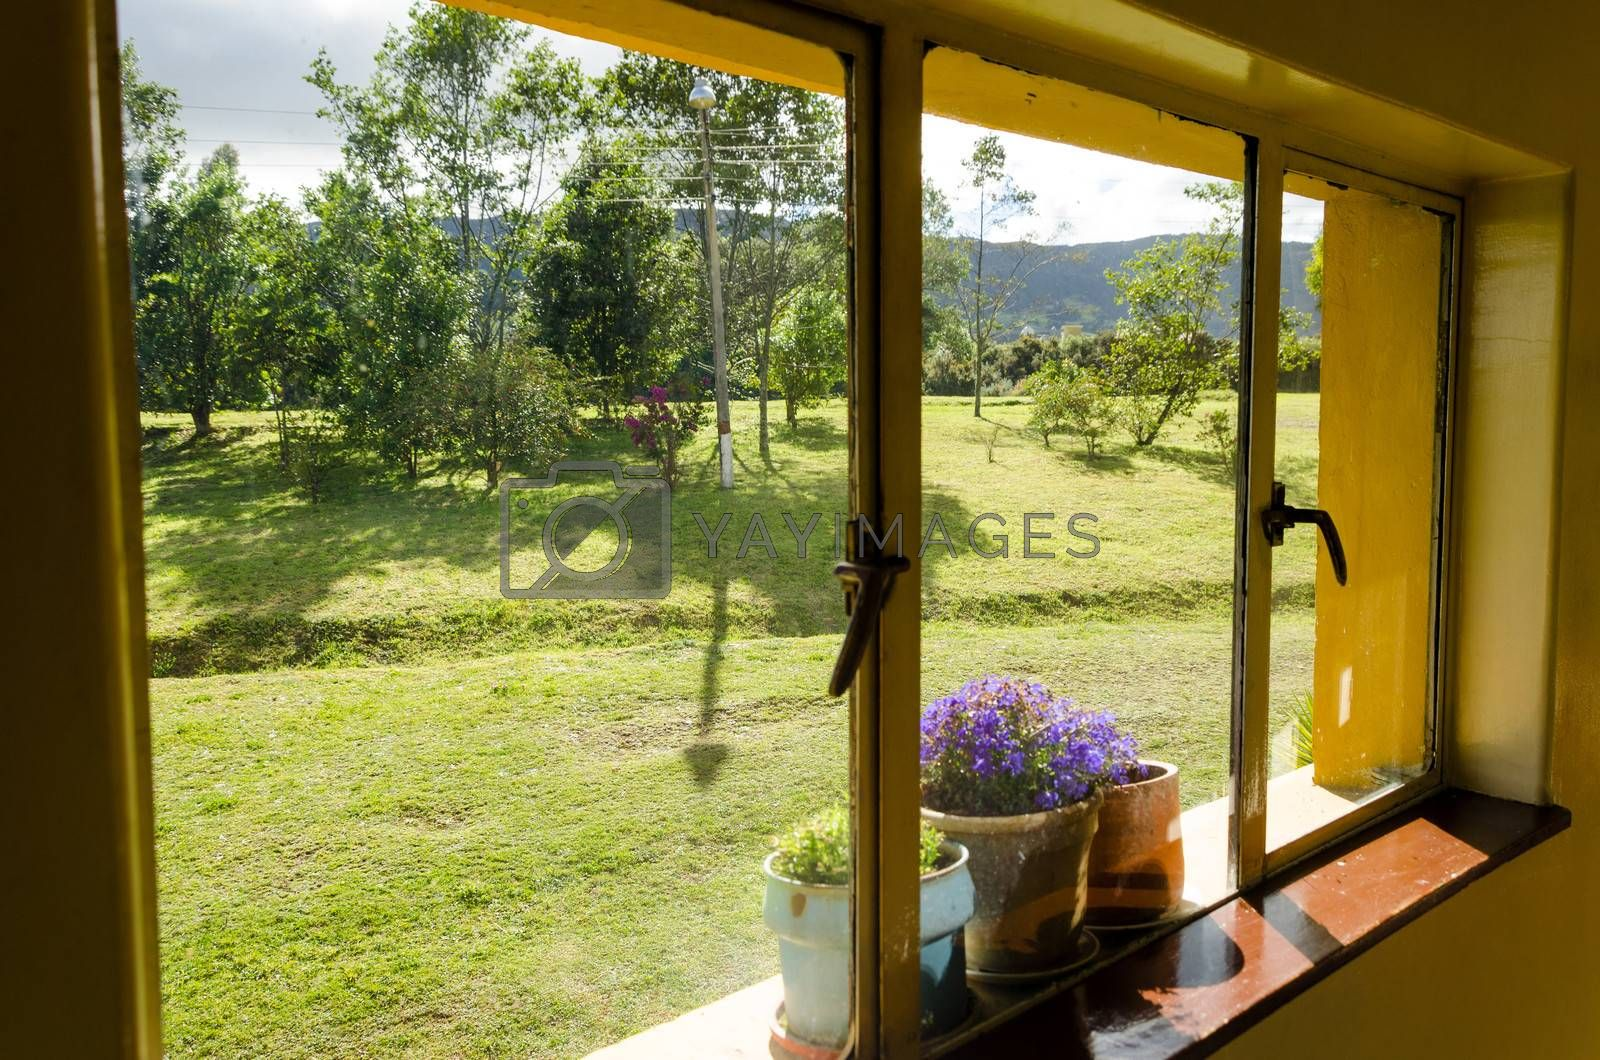 Windowsill and flowers in Neusa in Cundinamarca, Colombia